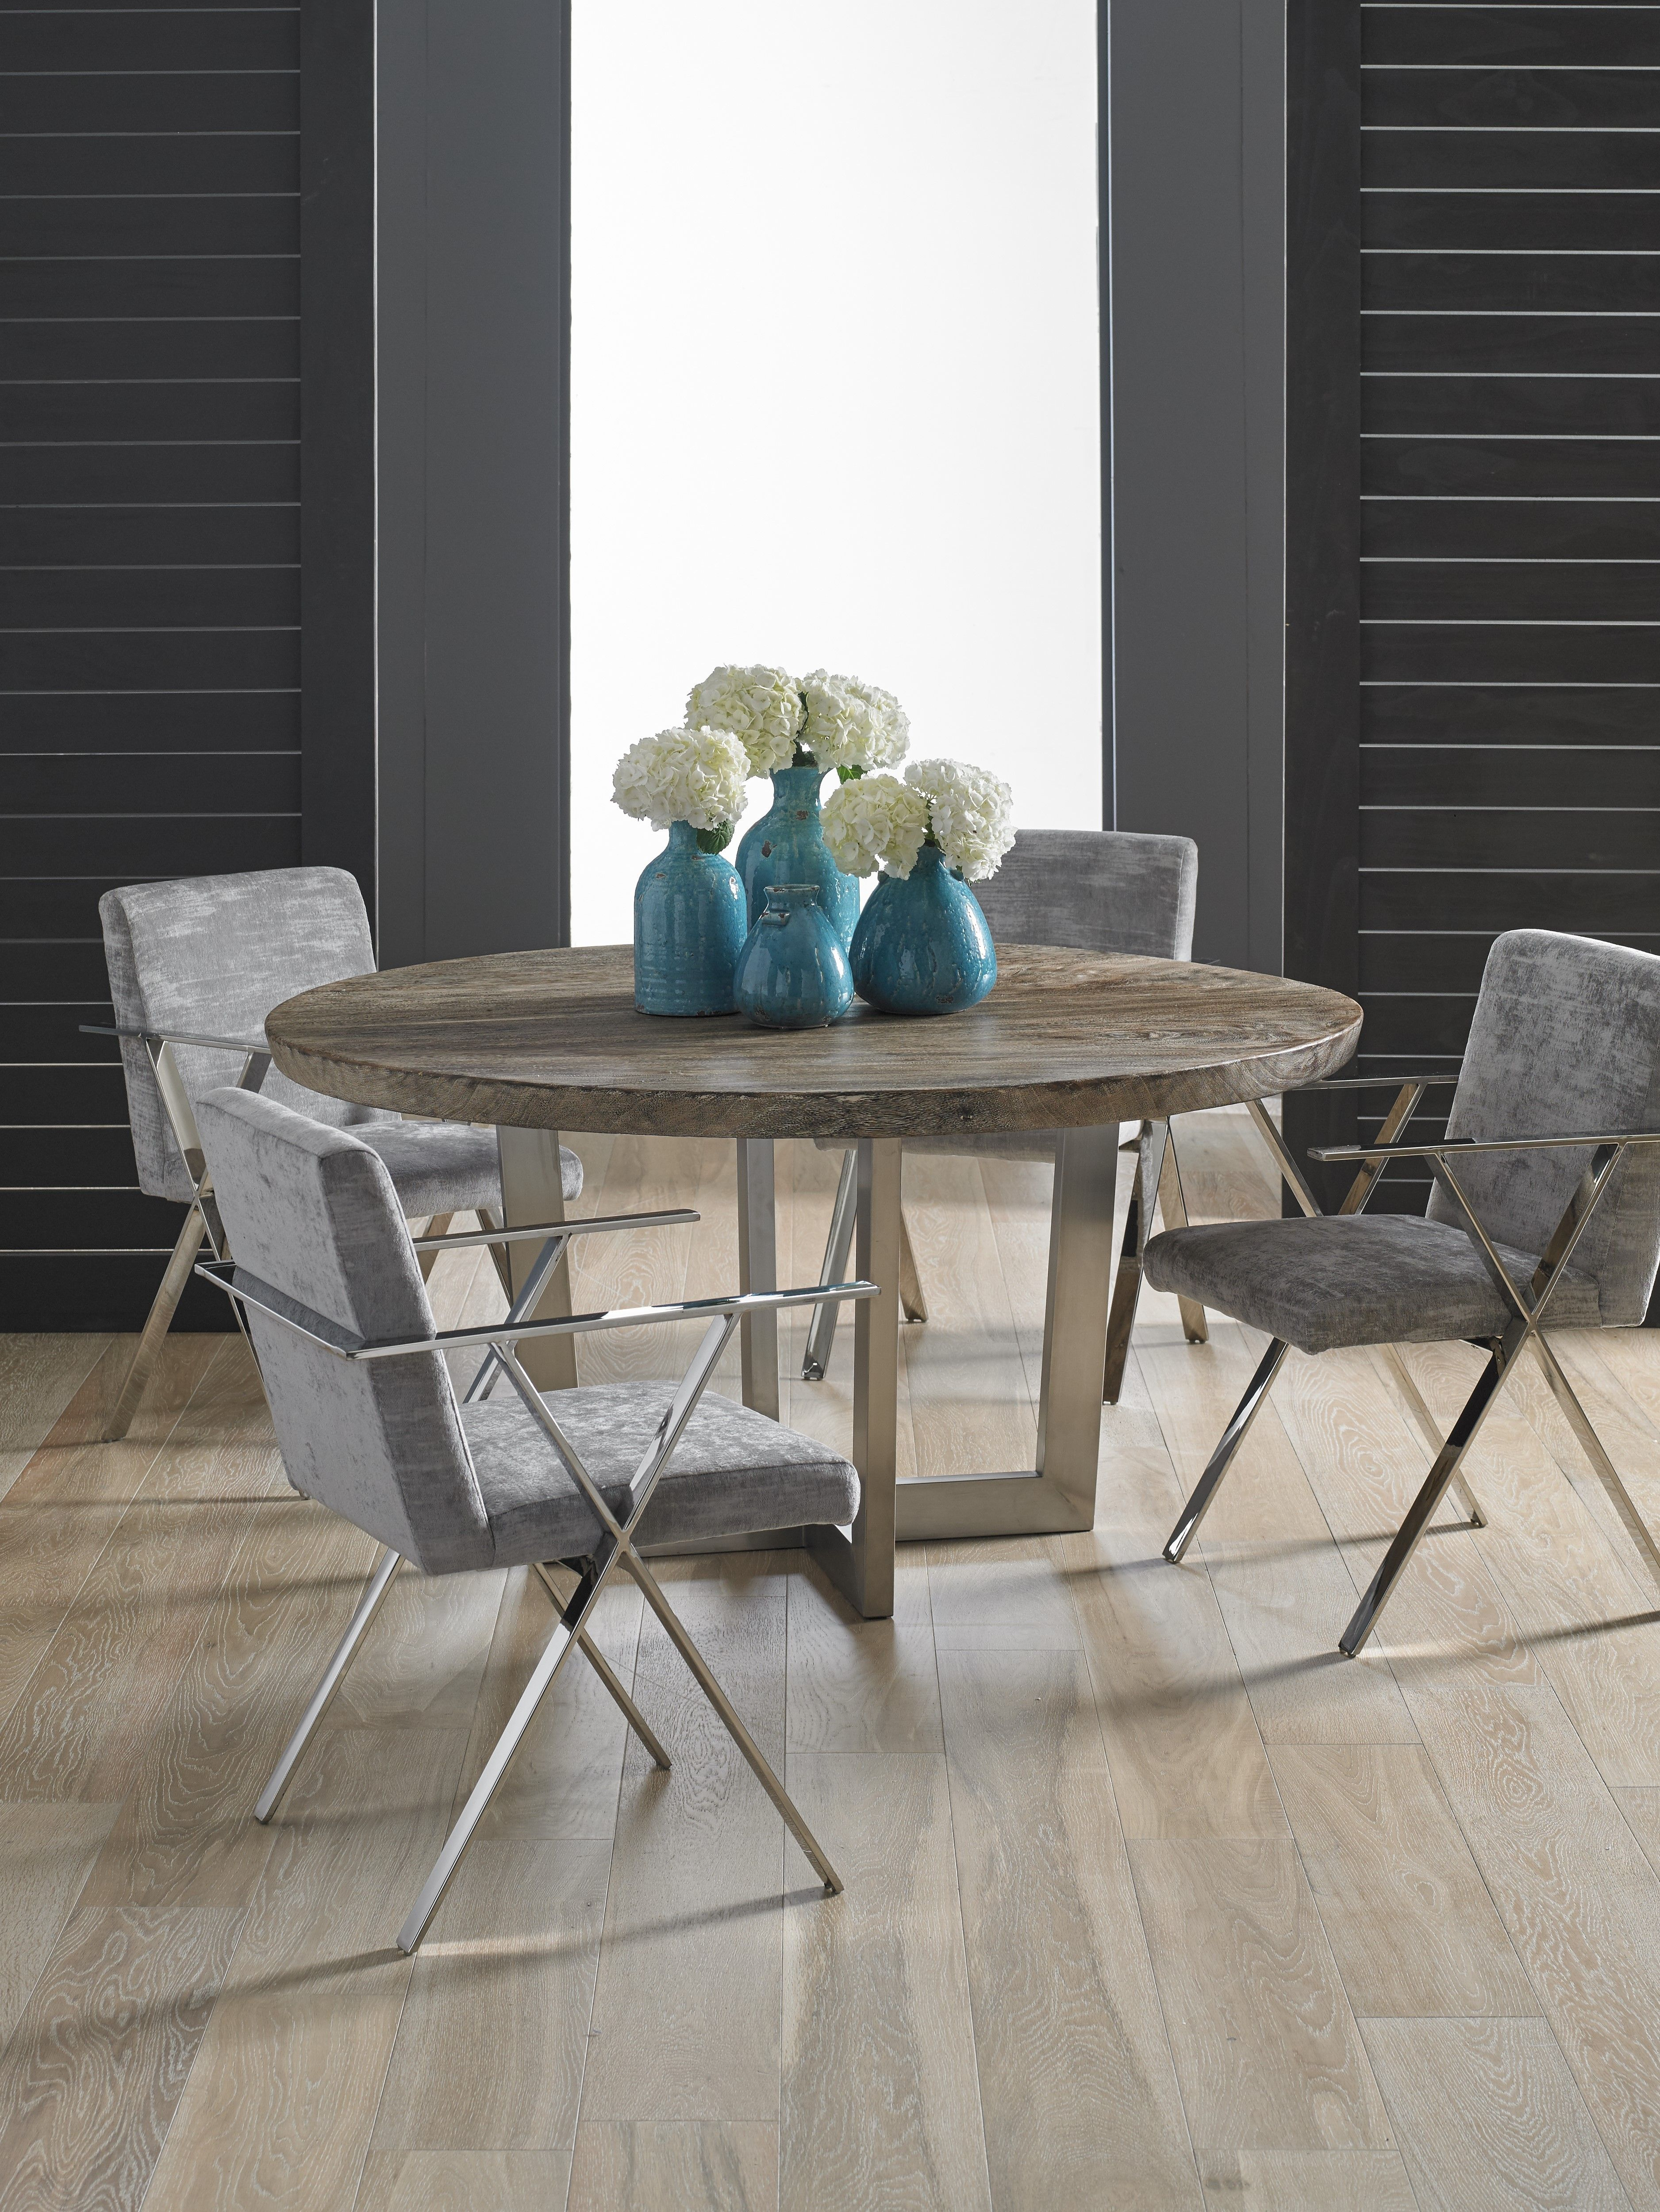 Grey stone round dining table from our origins collection